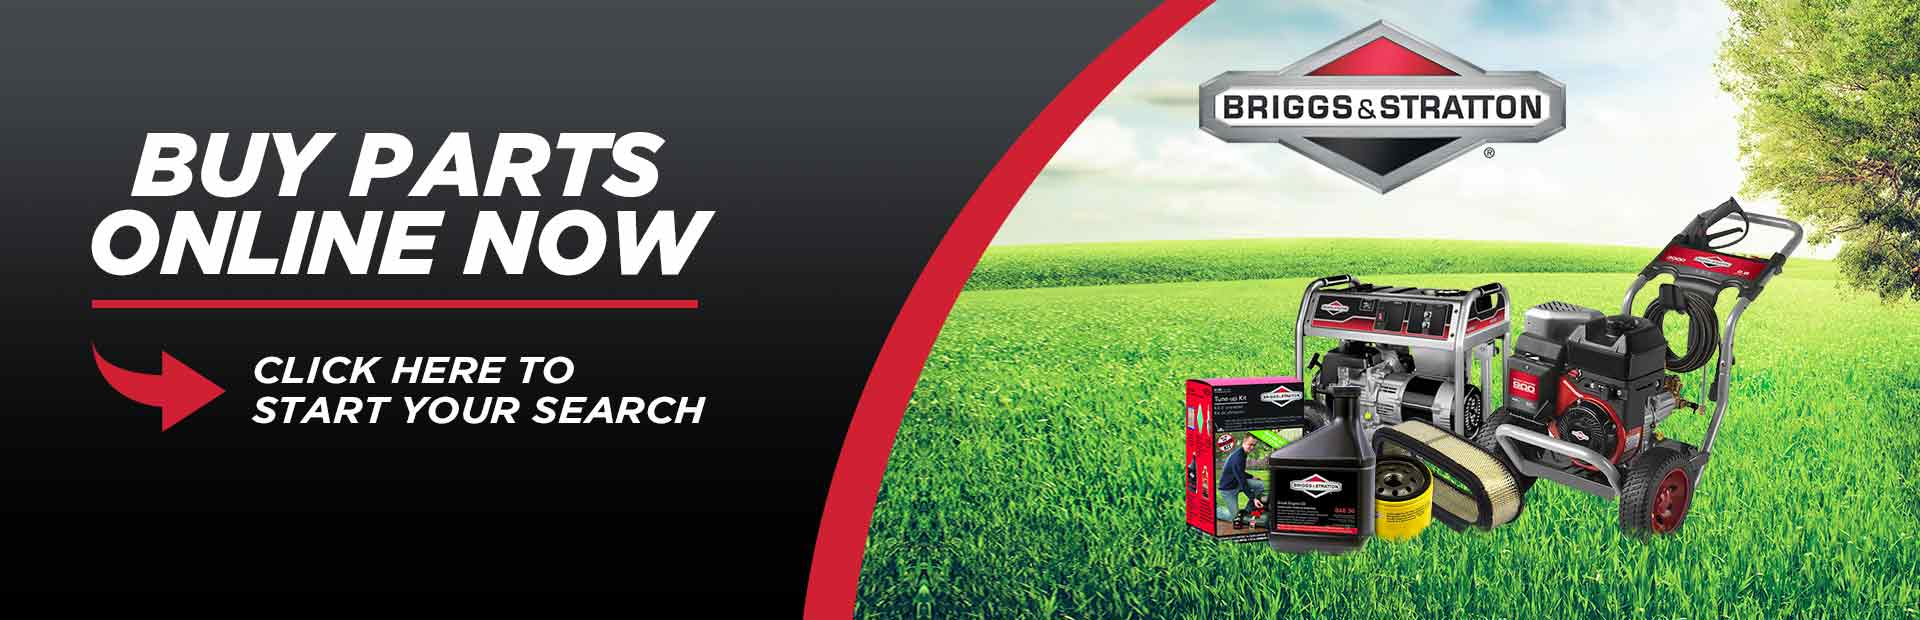 Briggs & Stratton Parts Lookup: Click here to find parts.